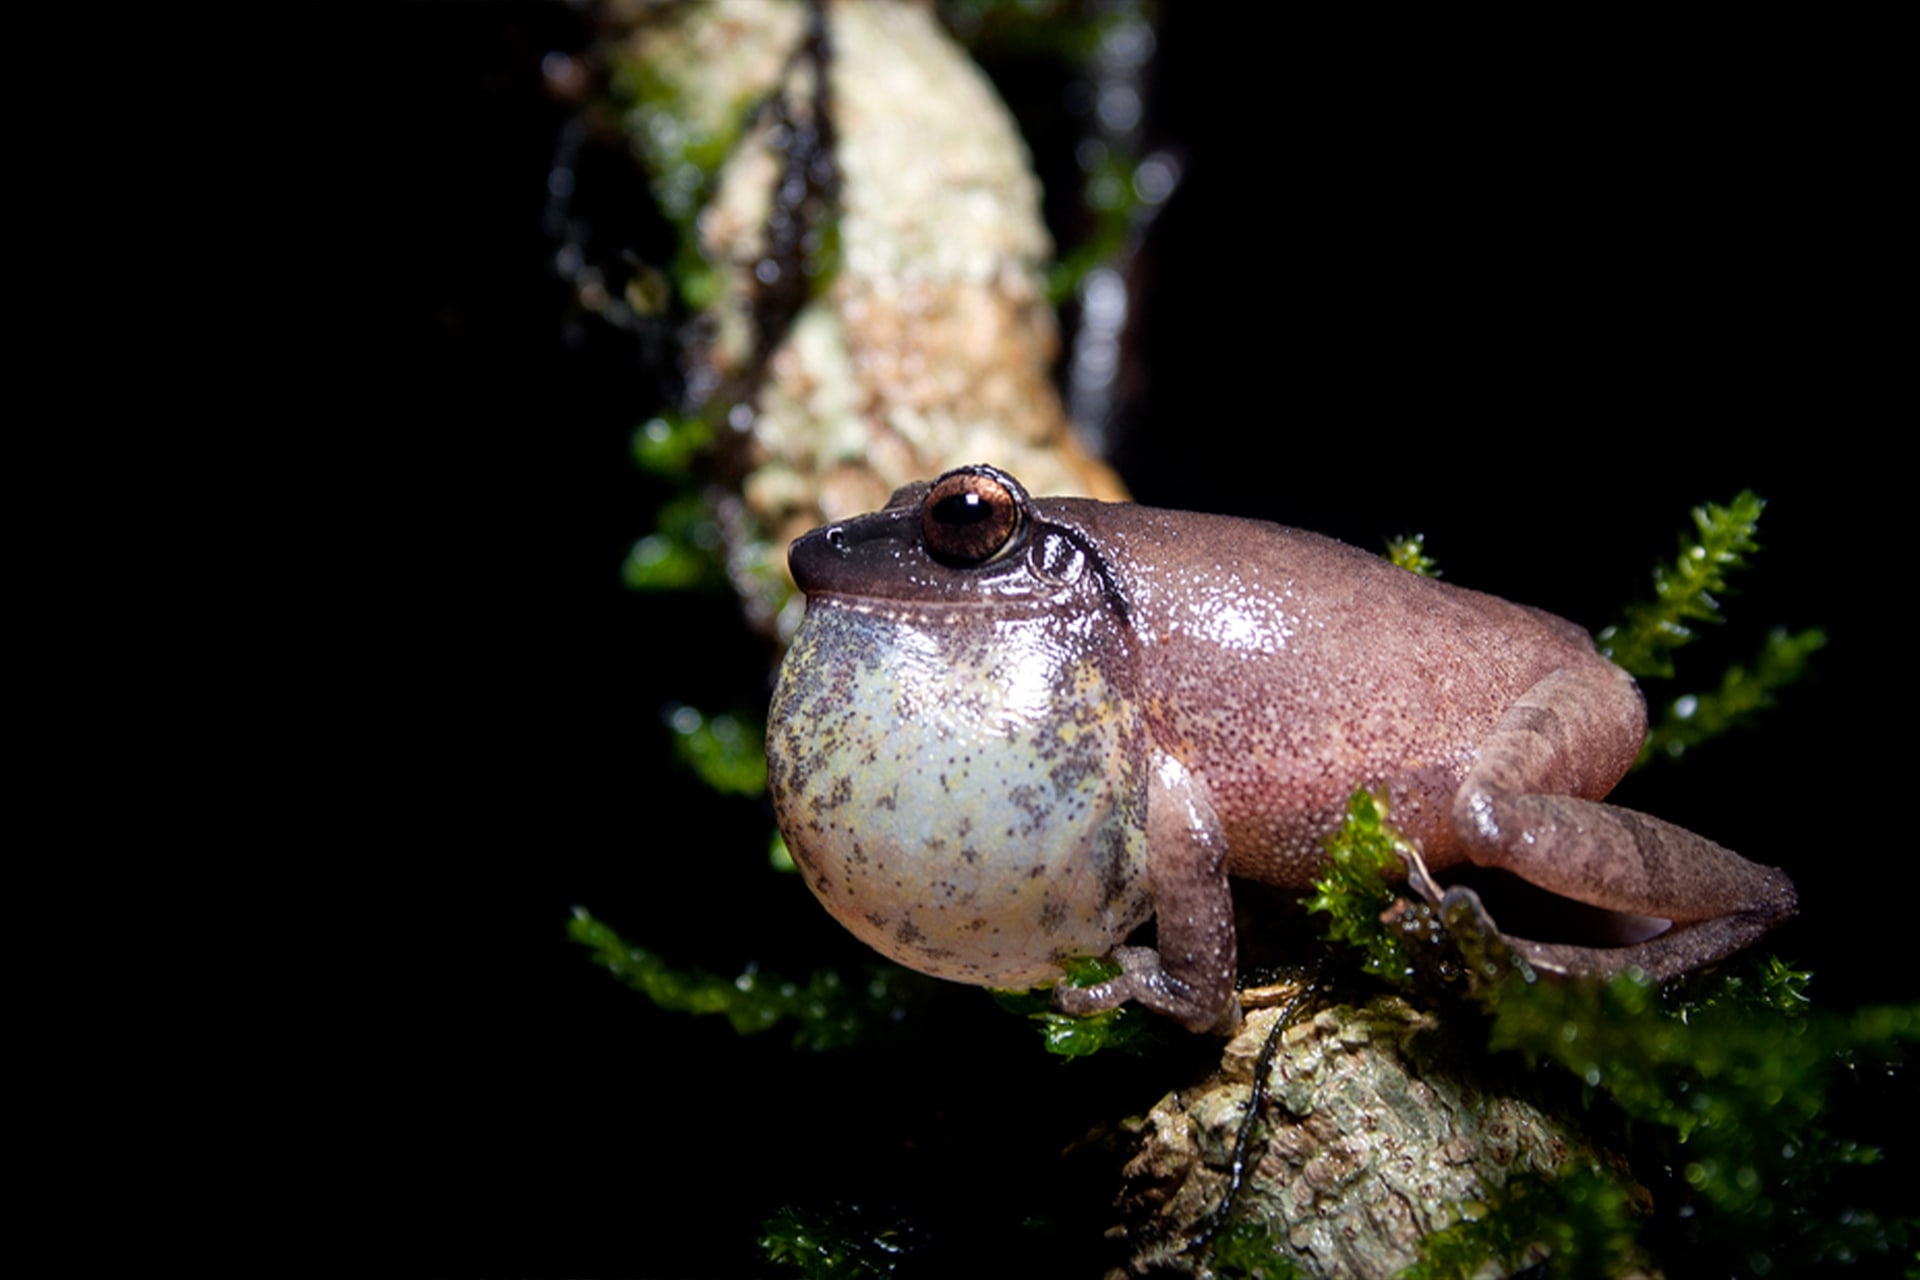 The Amboli bush frog while endemic to the Western Ghats, has a larger range than the Amboli toad, and can be seen in certain moist evergreen habitats in Maharashtra and Karnataka. It is best identified by its 'trrrrri'call, the vocal sac balloons when it calls out, and the dark tympanum (circular membrane behind the eye).